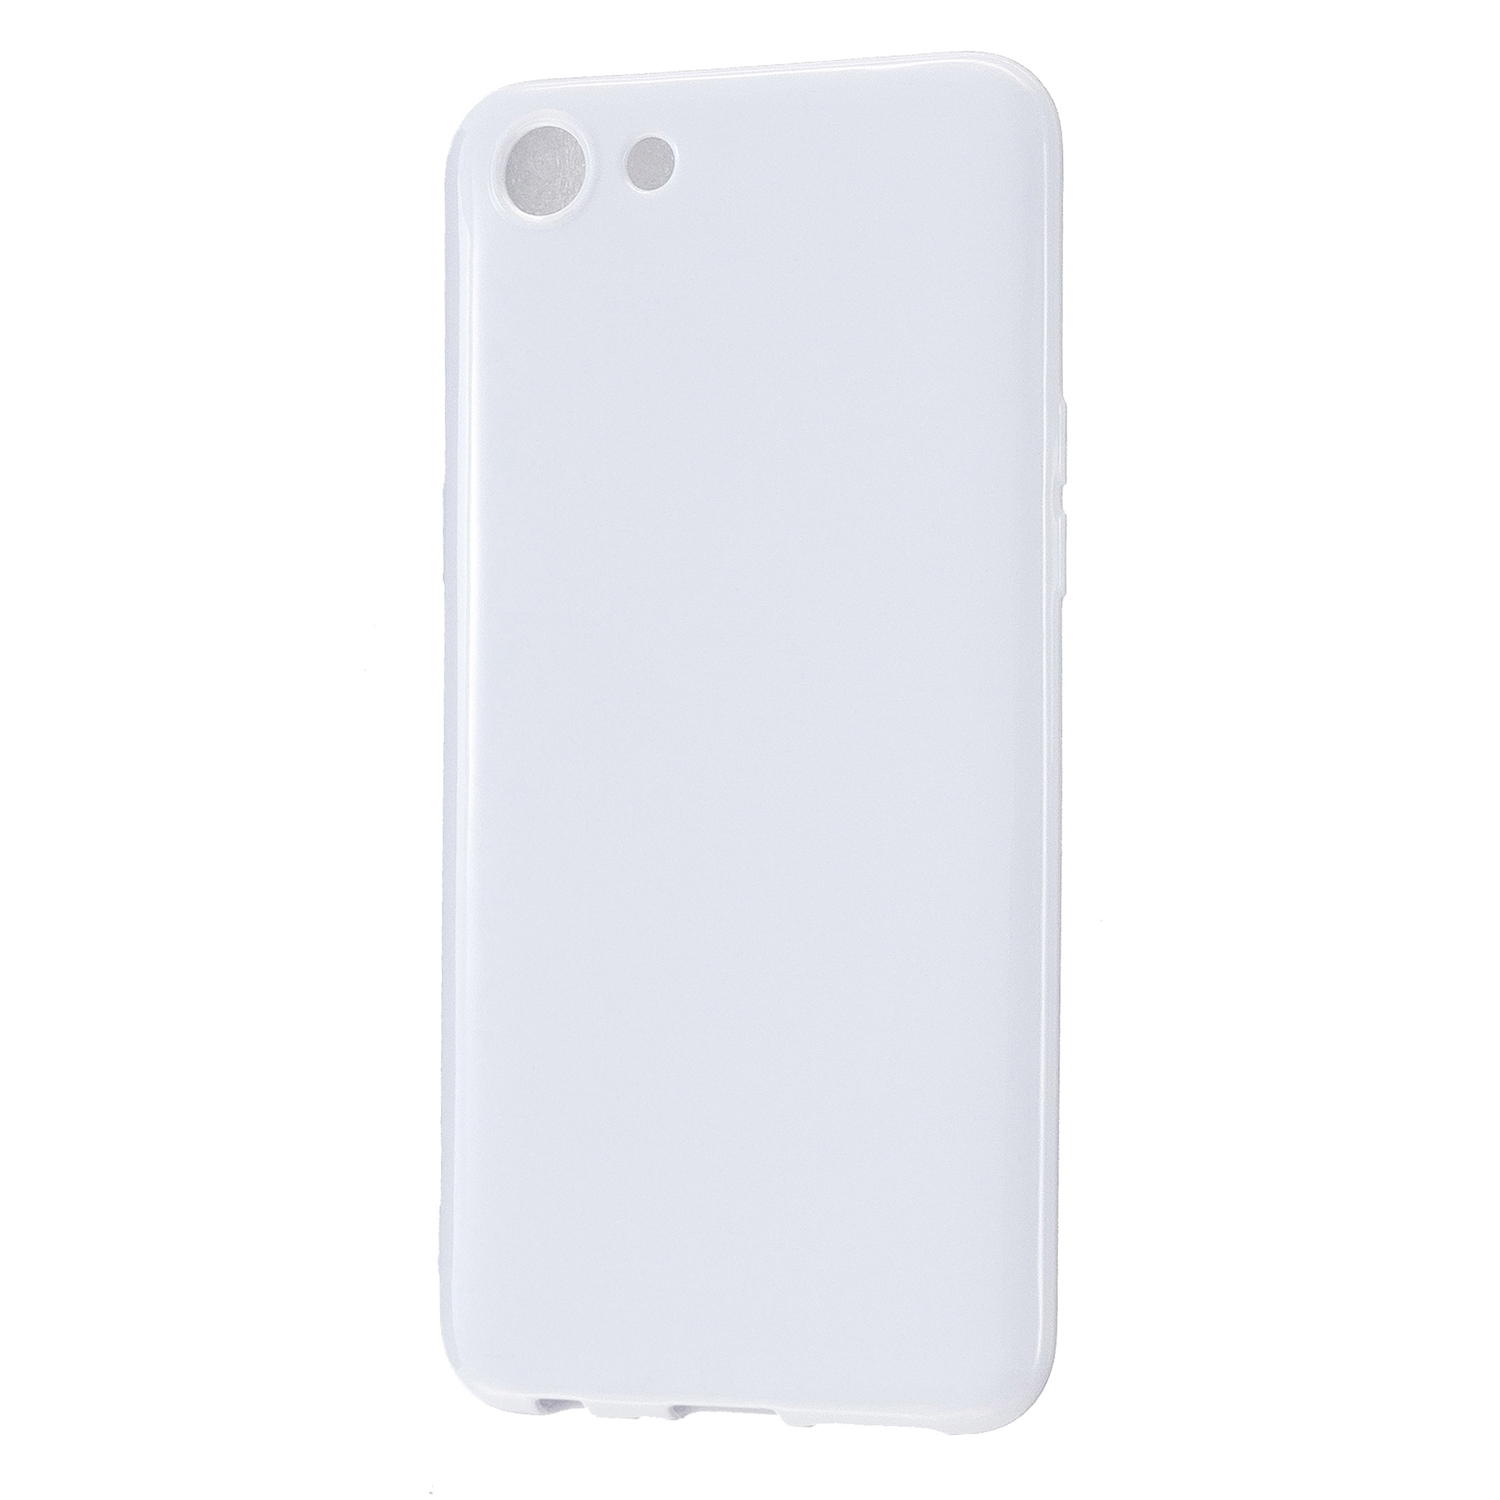 For OPPO A79/A83 Cellphone Cover Soft Hands Feel No-Fade TPU Phone Case Full Body Protection Milk white